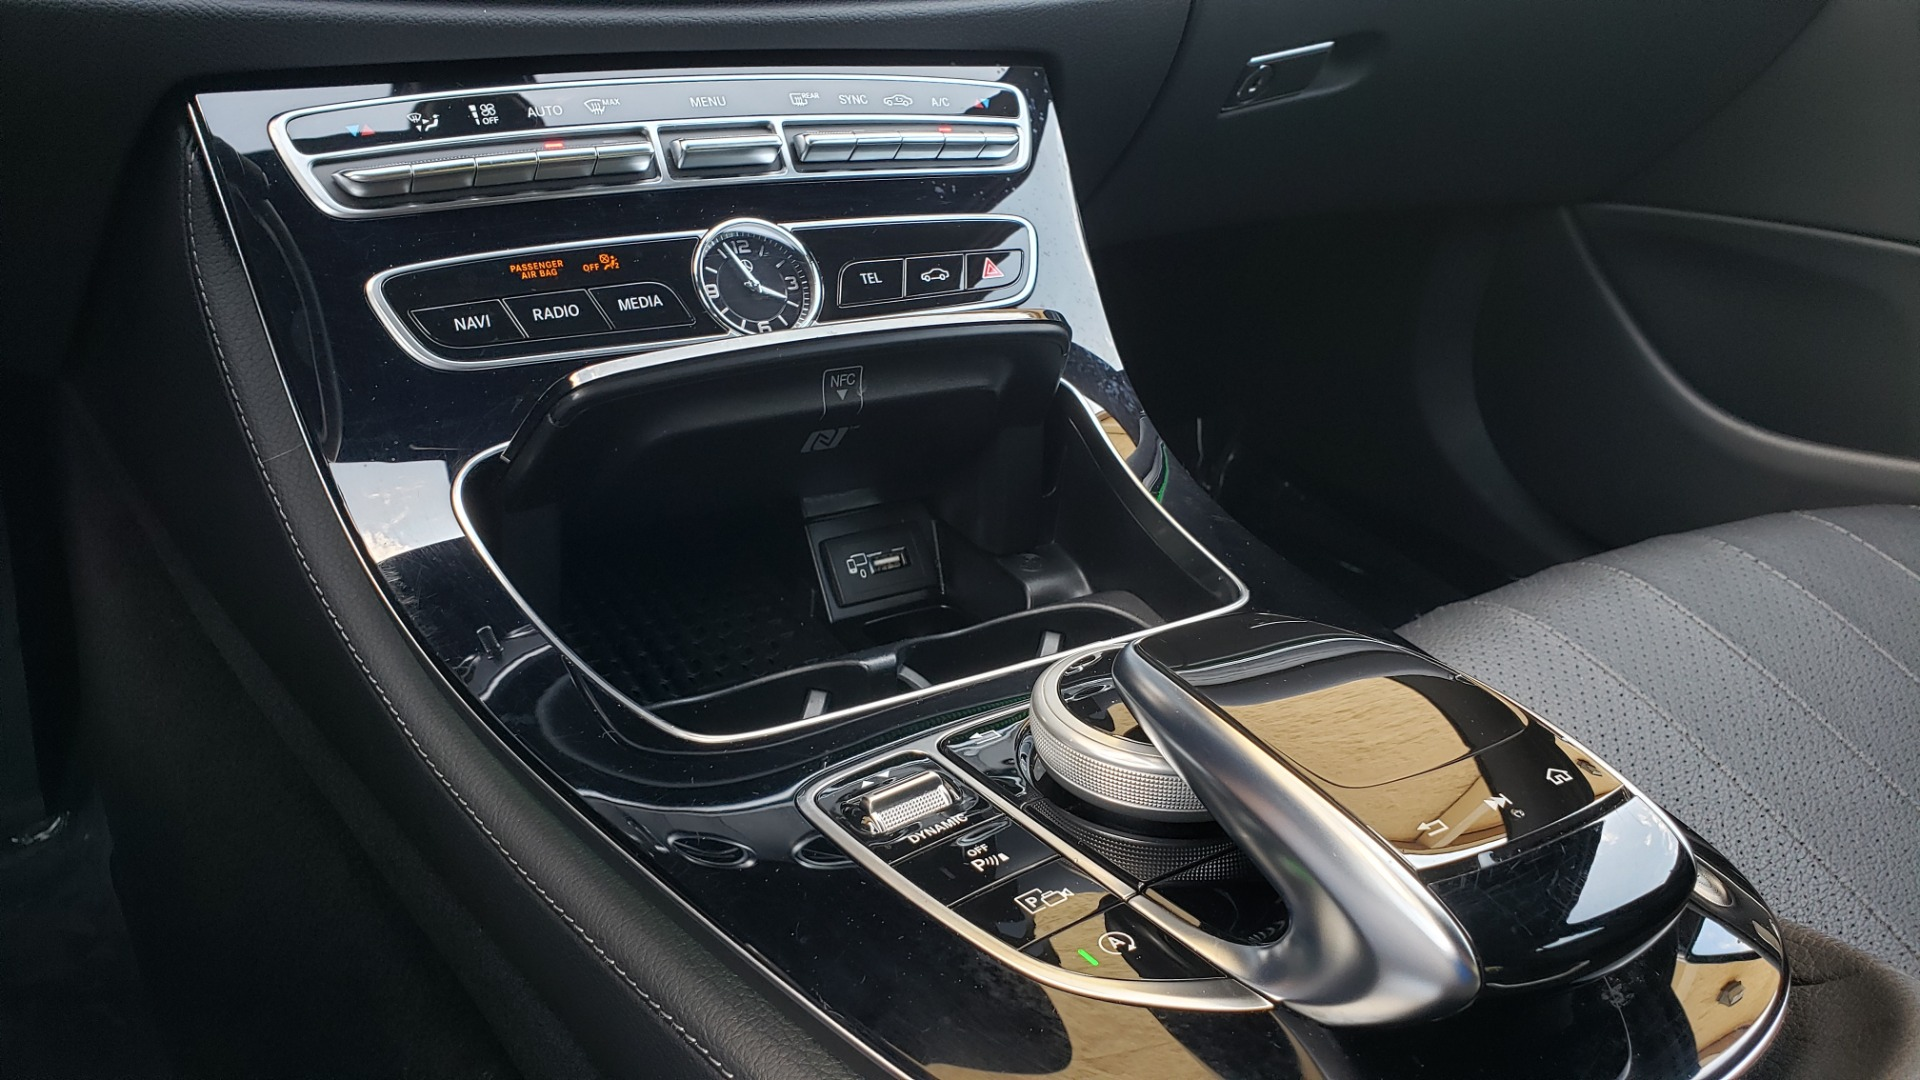 Used 2017 Mercedes-Benz E-CLASS E 300 SPORT / NAV / SUNROOF / HTD STS / BURMESTER / REARVIEW for sale Sold at Formula Imports in Charlotte NC 28227 51